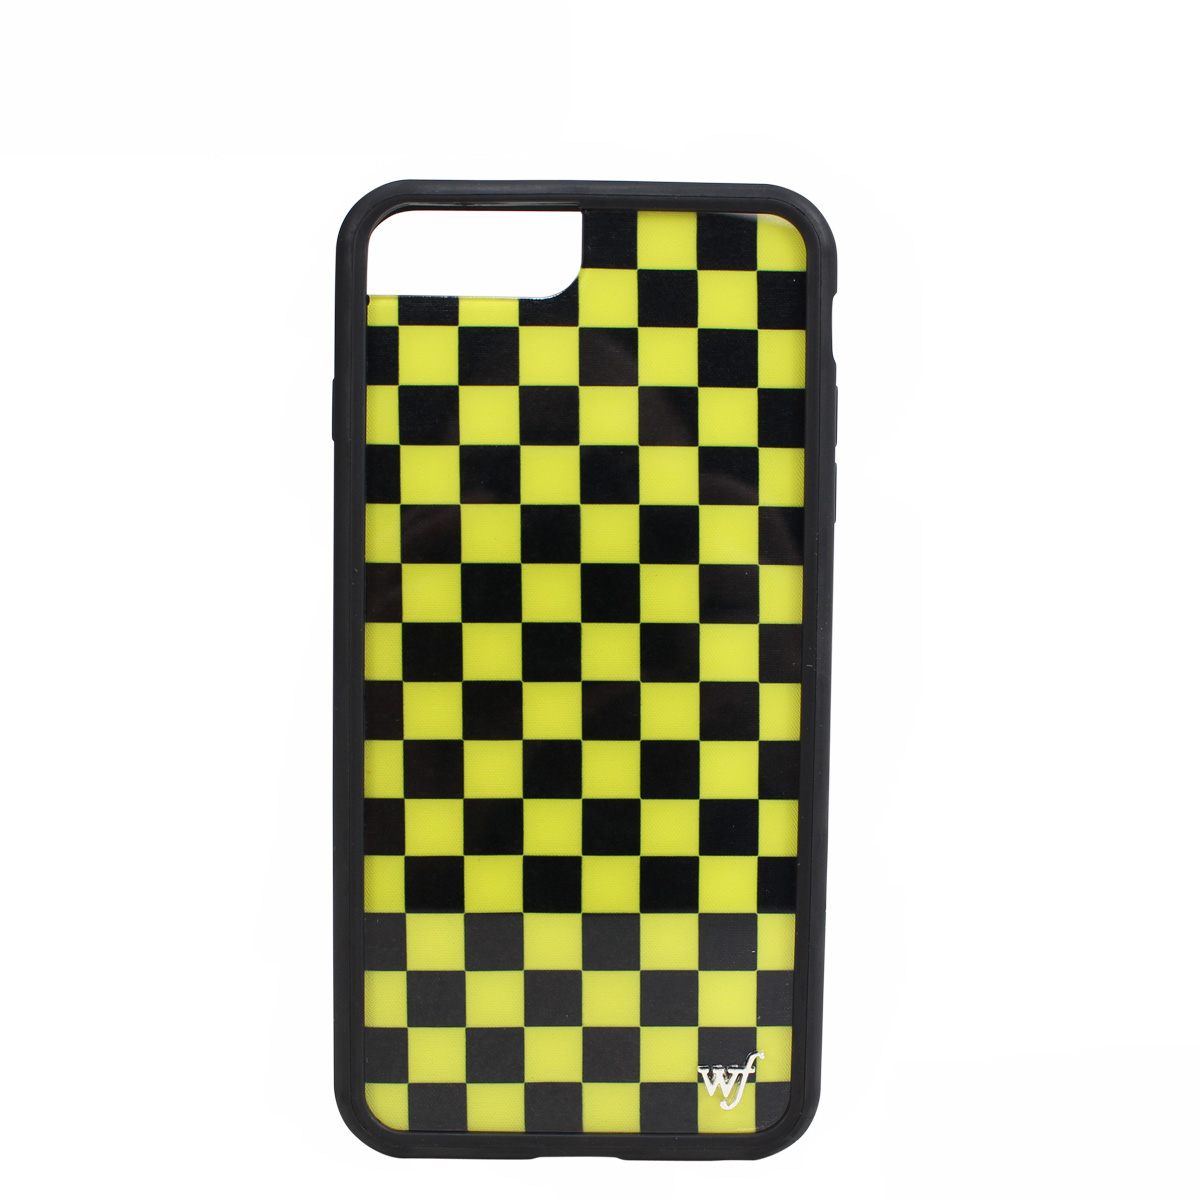 best website d58d2 f2719 wildflower iPhone8 X 7 iPhone 6 6s Plus wild flower case smartphone  eyephone Lady's checker yellow YCHE